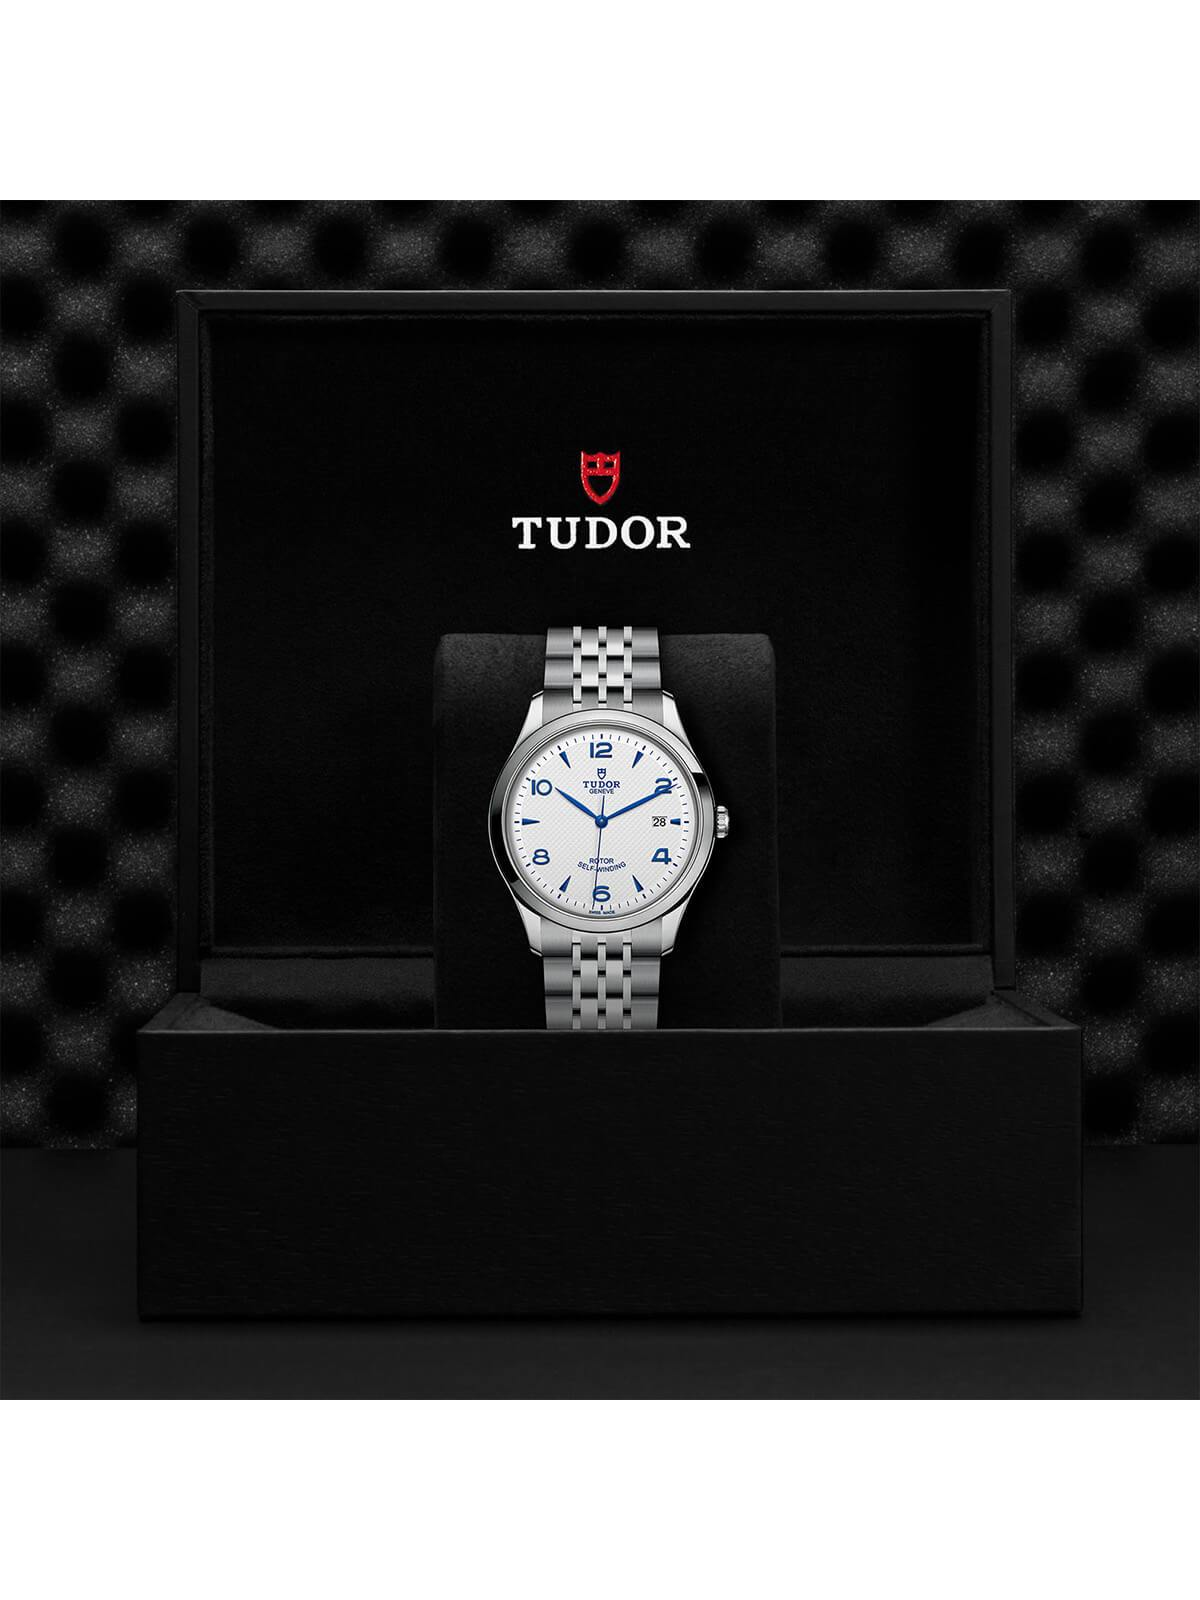 TUDOR 1926 Watch 41mm M91650-0005